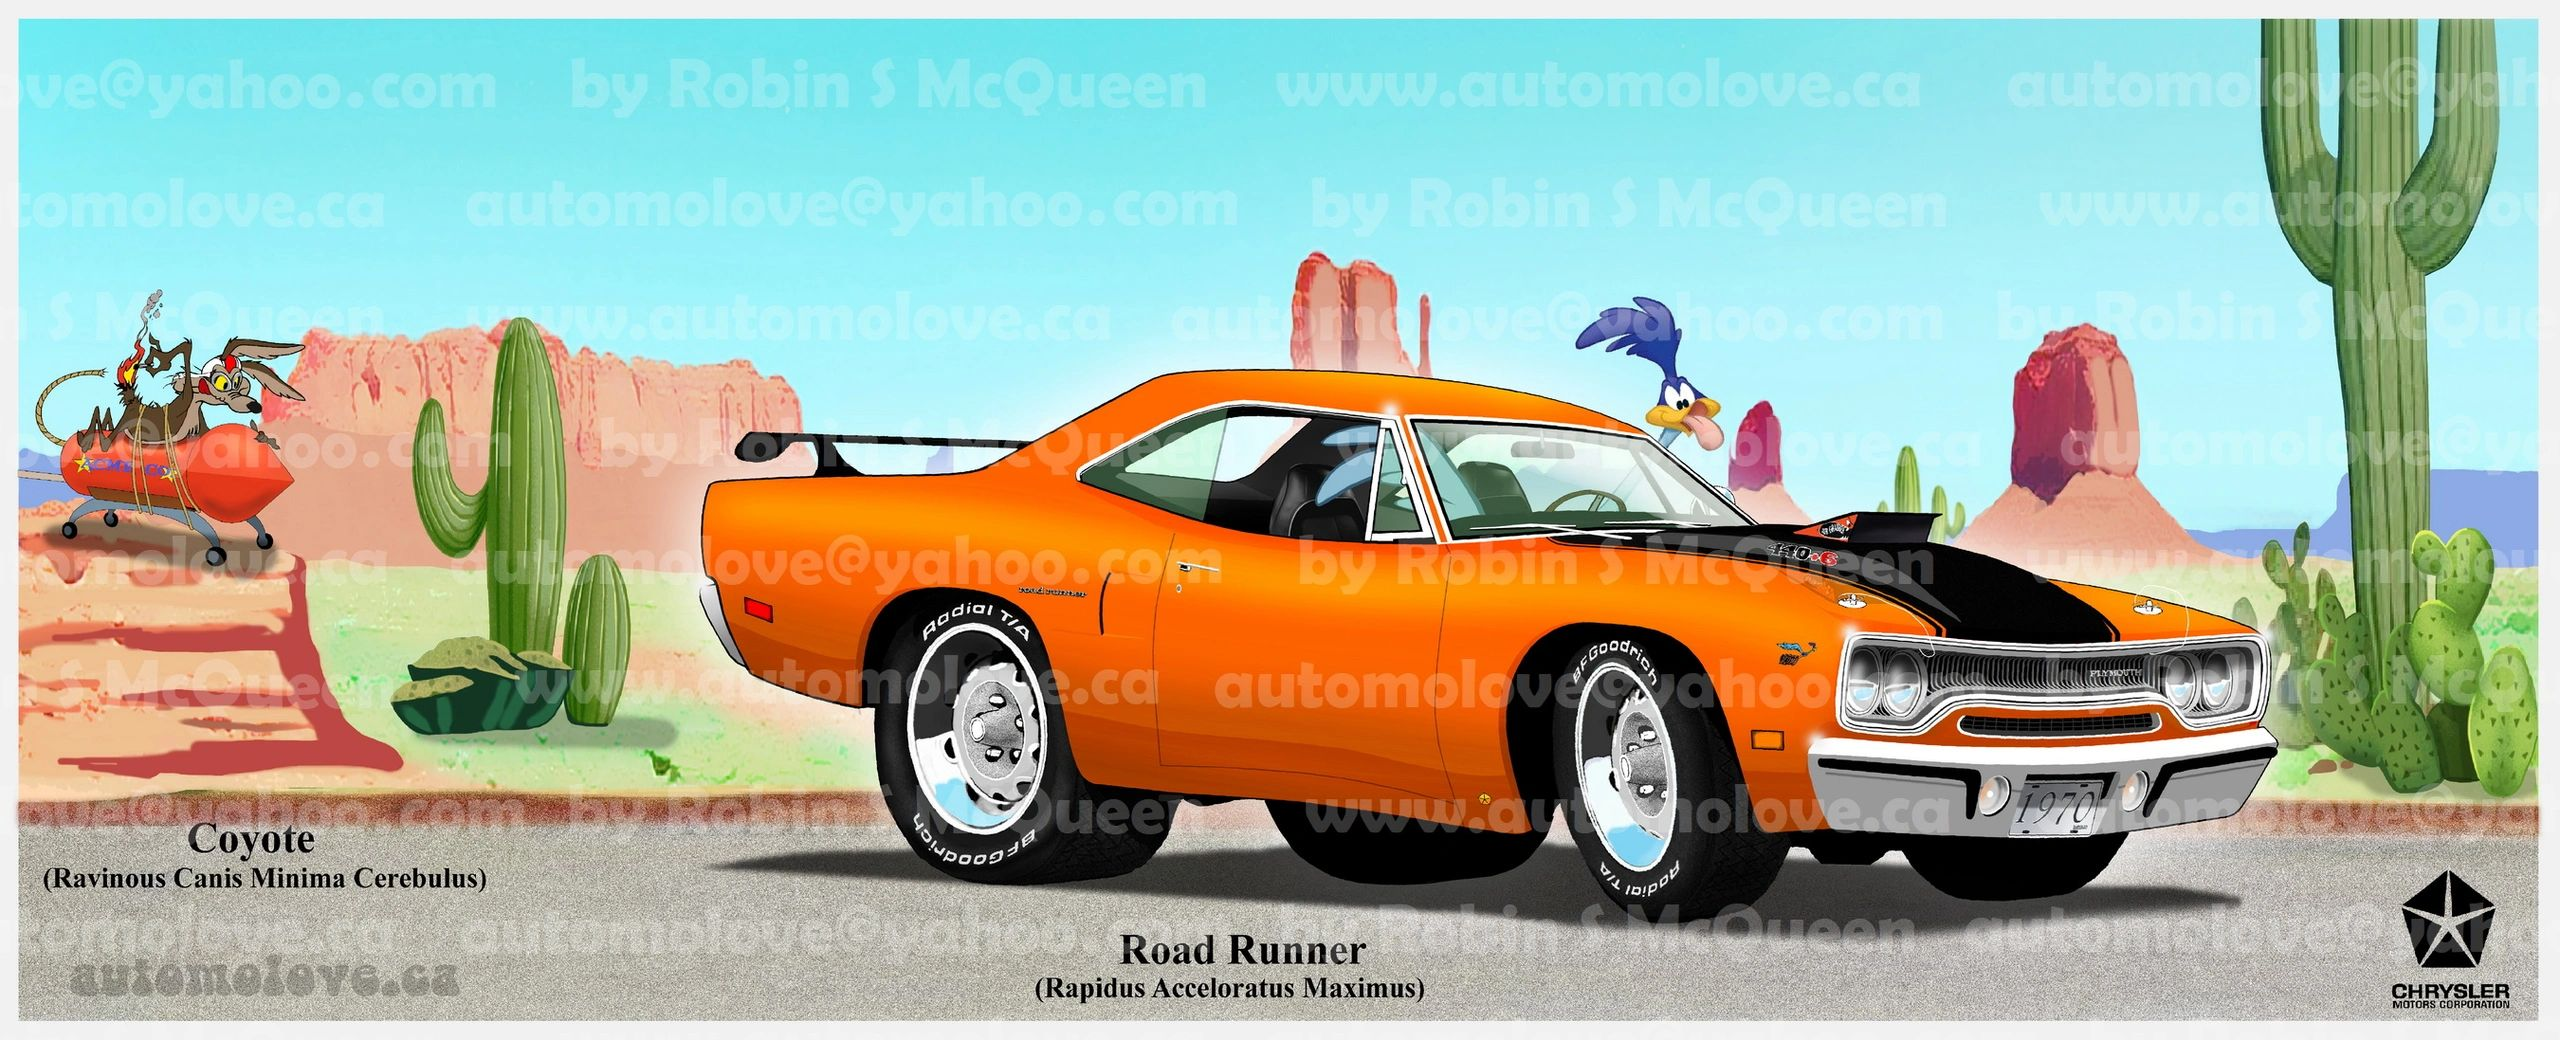 1970 Plymouth Roadrunner in Vitamin C orange, equipped with a 440 Six-Barrel engine and 4 gear.